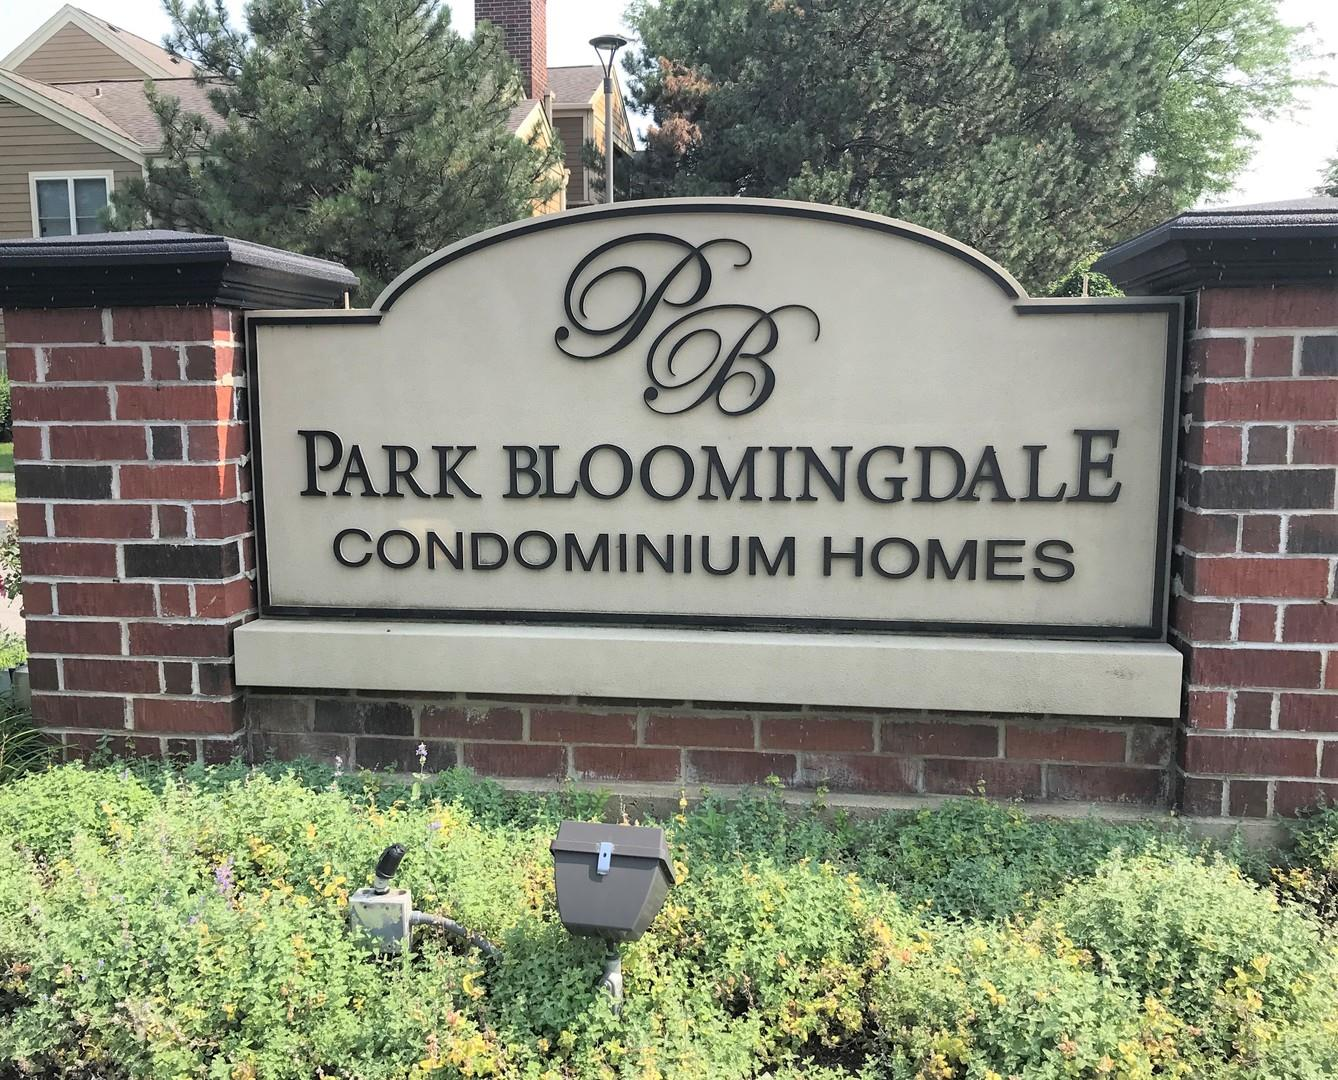 120 GLENGARRY Drive #195-196, Bloomingdale, IL 60108 - #: 11176271